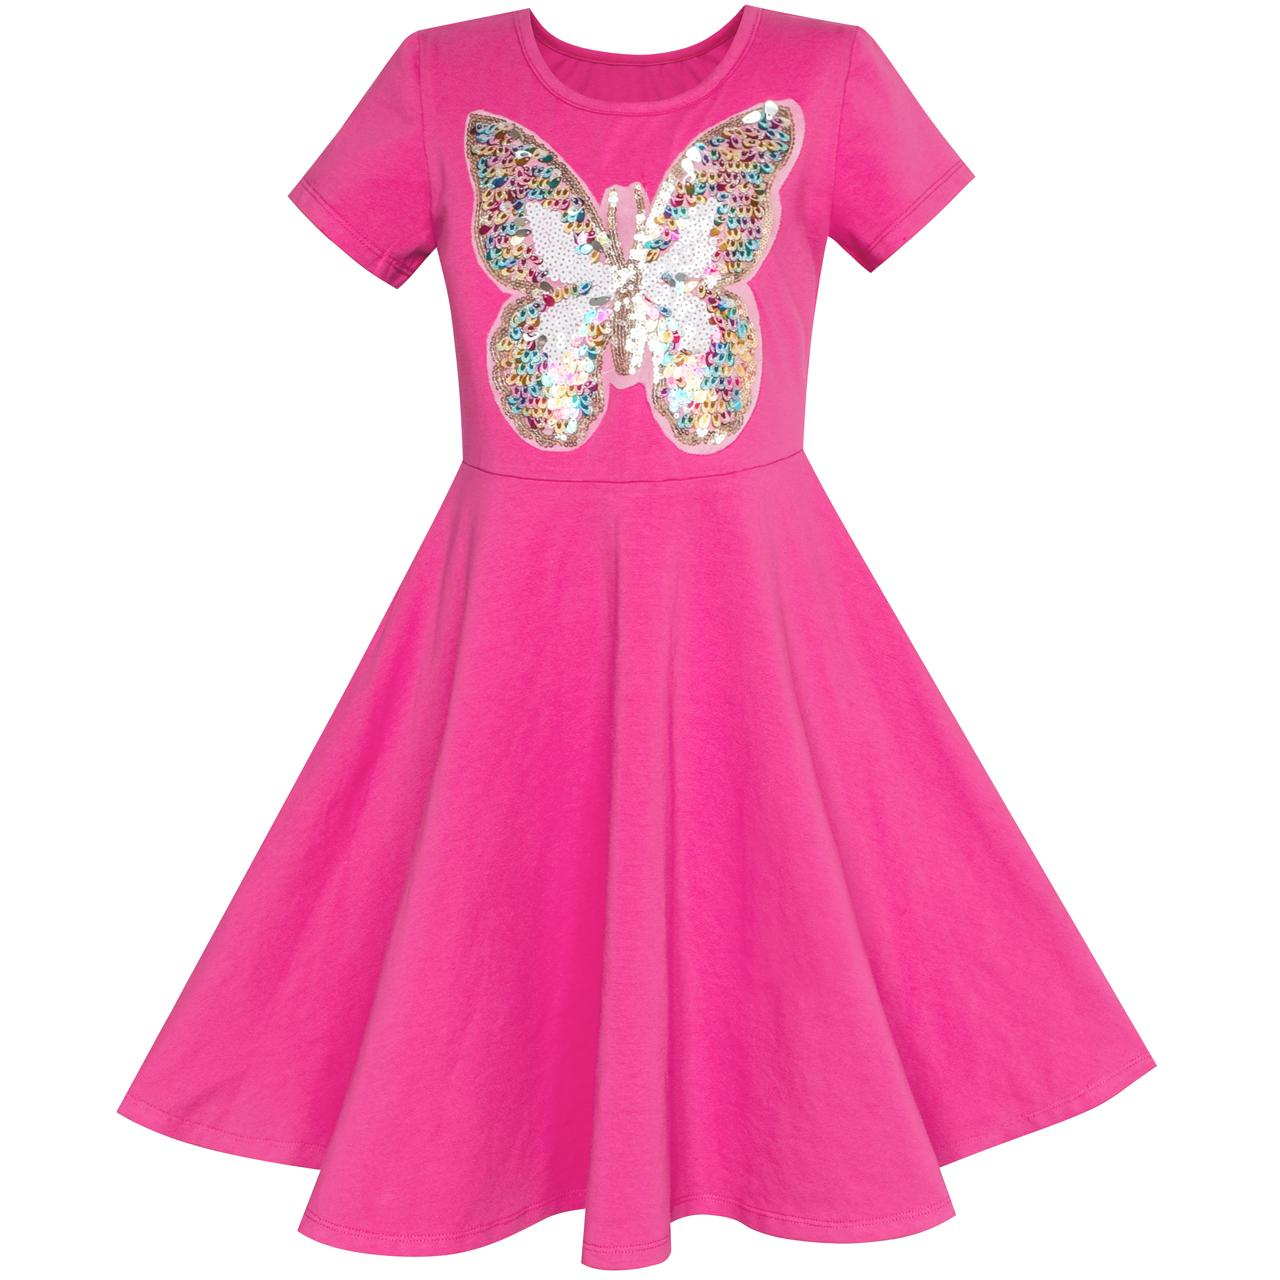 Sunny Fashion Girls Dress Deep Pink Butterfly Sequin Cotton Dress 2018 Summer Princess Wedding Party Dresses Clothes Size 5-12 sunny fashion girls dress long sleeve crown ribbon birthday princess pink dress 2017 summer wedding party dresses size 4 8